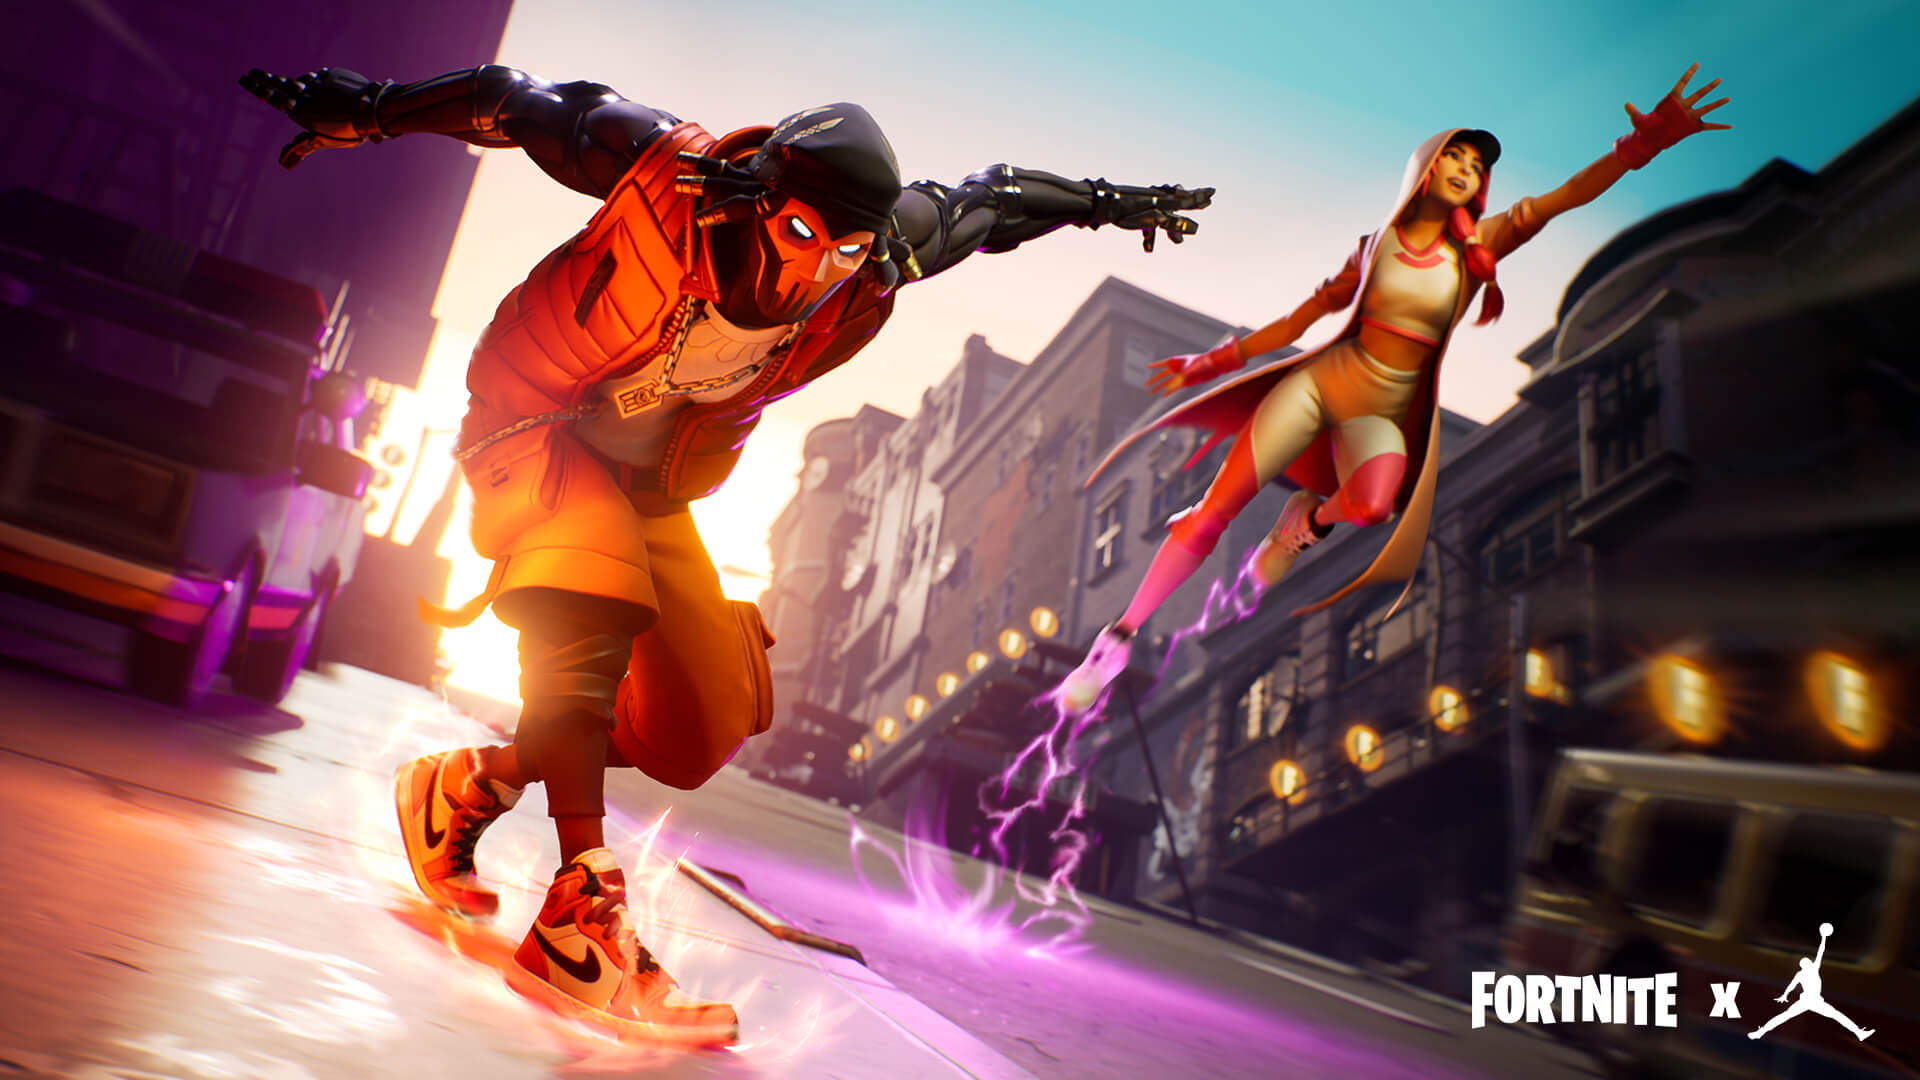 Fortnite_blog_game-recognize-game_09BR_LTM_DowntownDrop_Screenshot_1920x1080-1920x1080-6b47f35ffb952c697cb4b938af3aac450e37b79a.jpg